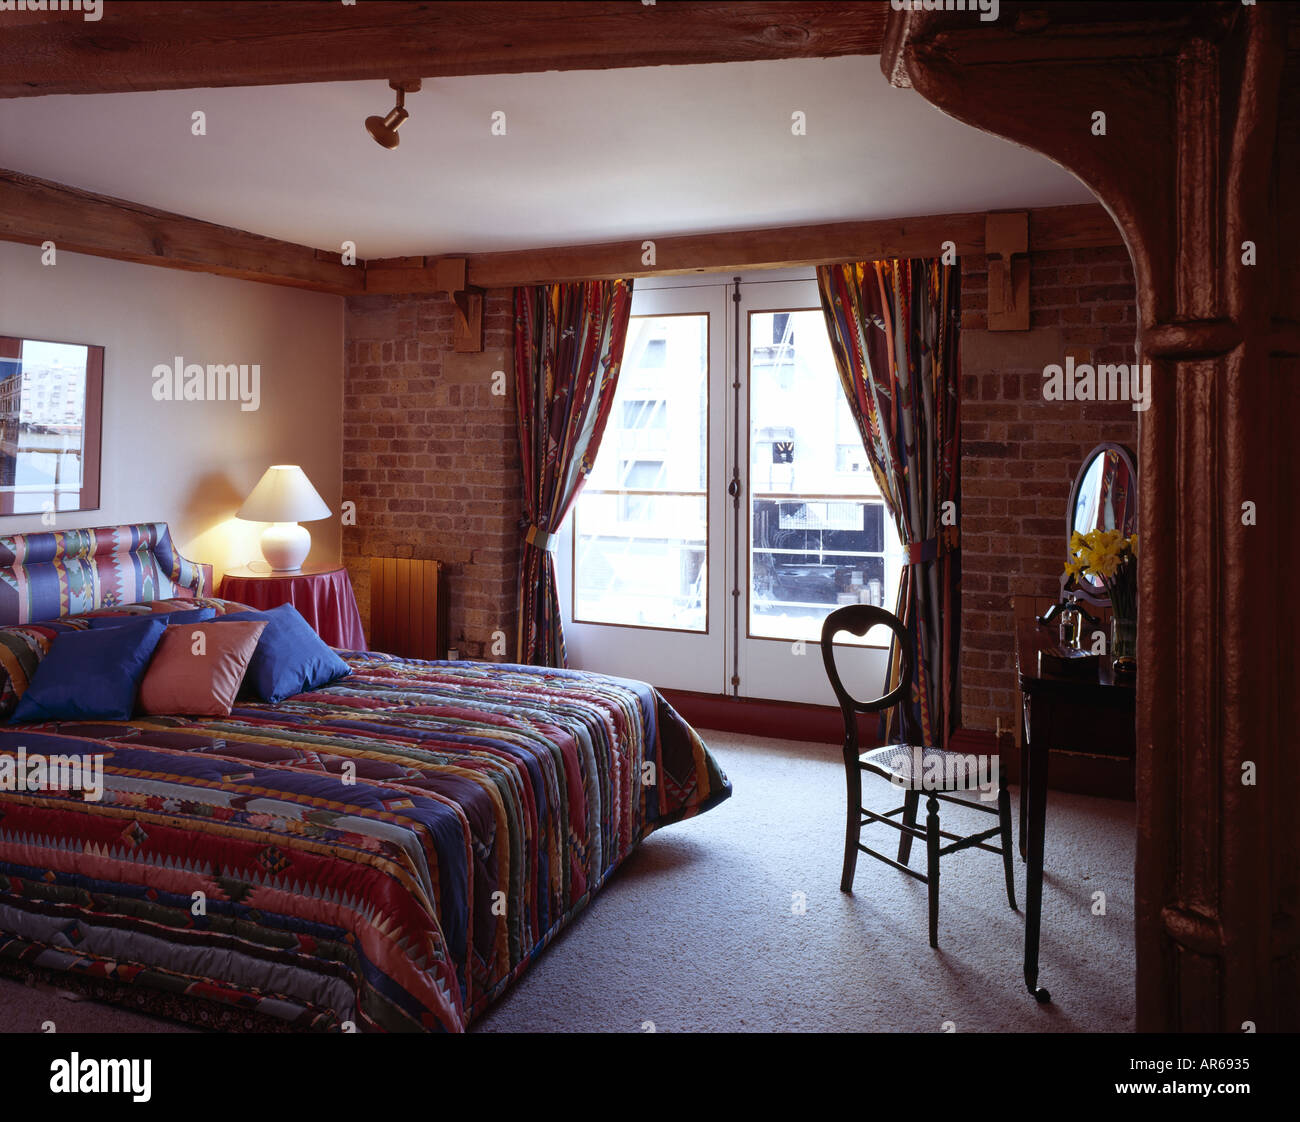 Show Flat, New Concordia Wharf, Docklands. Bedroom. - Stock Image